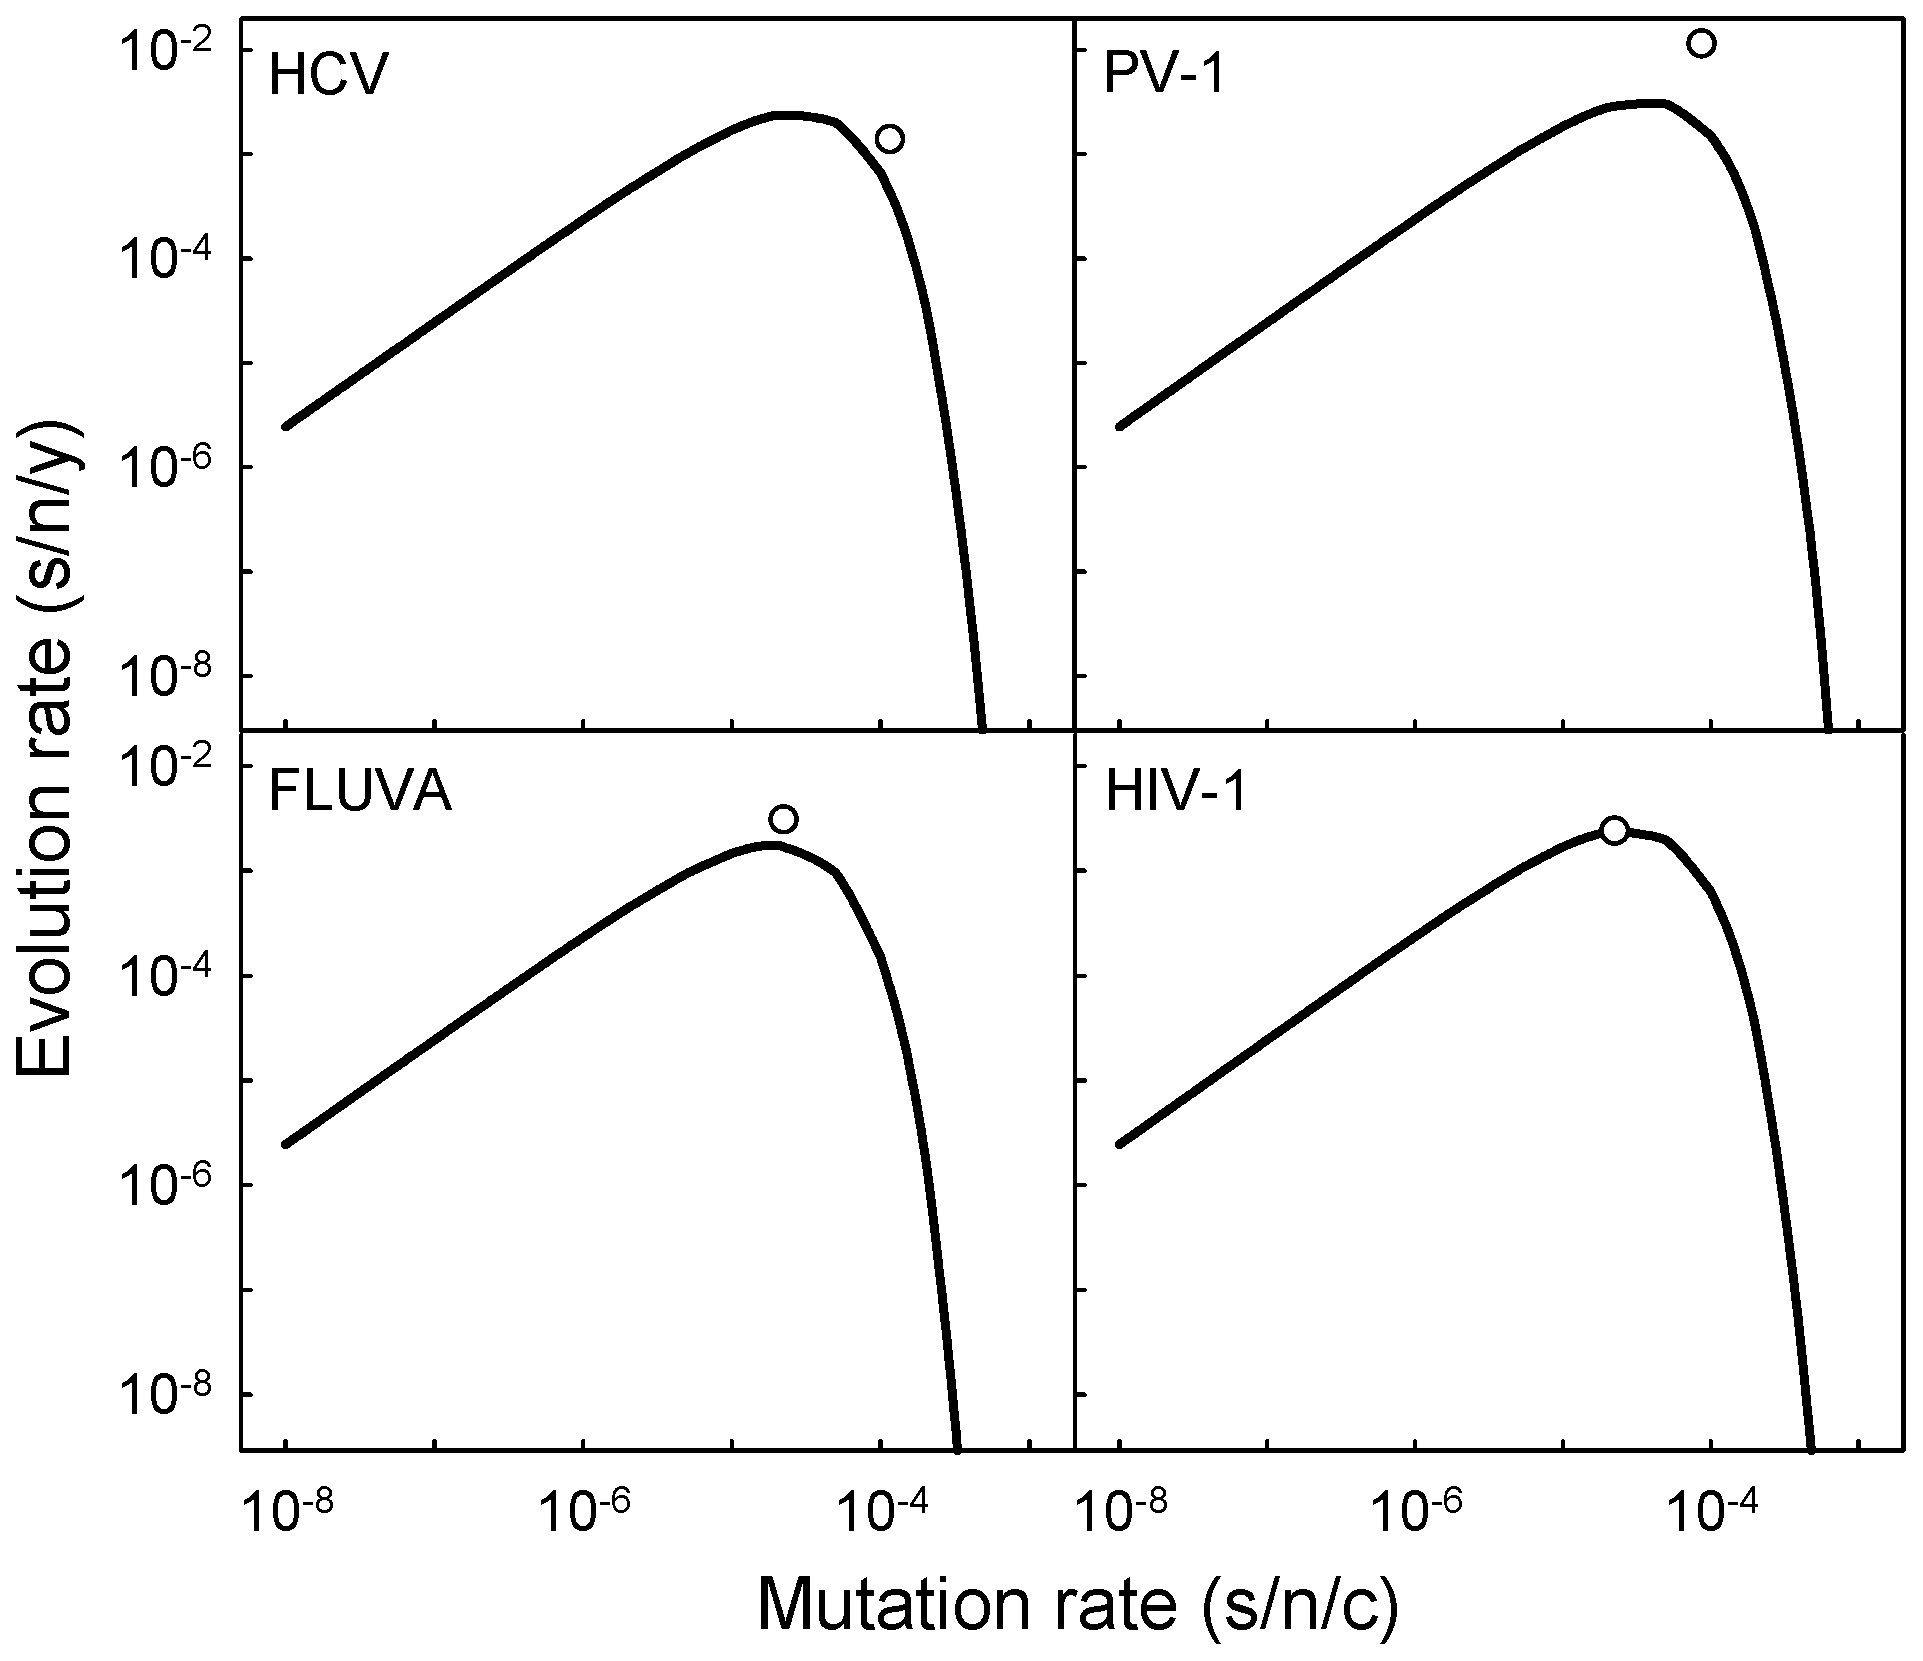 Expected relationship between mutation and evolution rates according to the neutral-deleterious evolution model for four human viruses: HCV (hepatitis C virus), PV-1 (poliovirus 1), FLUVA (influenza A virus), and HIV-1 (human immunodeficiency virus 1).